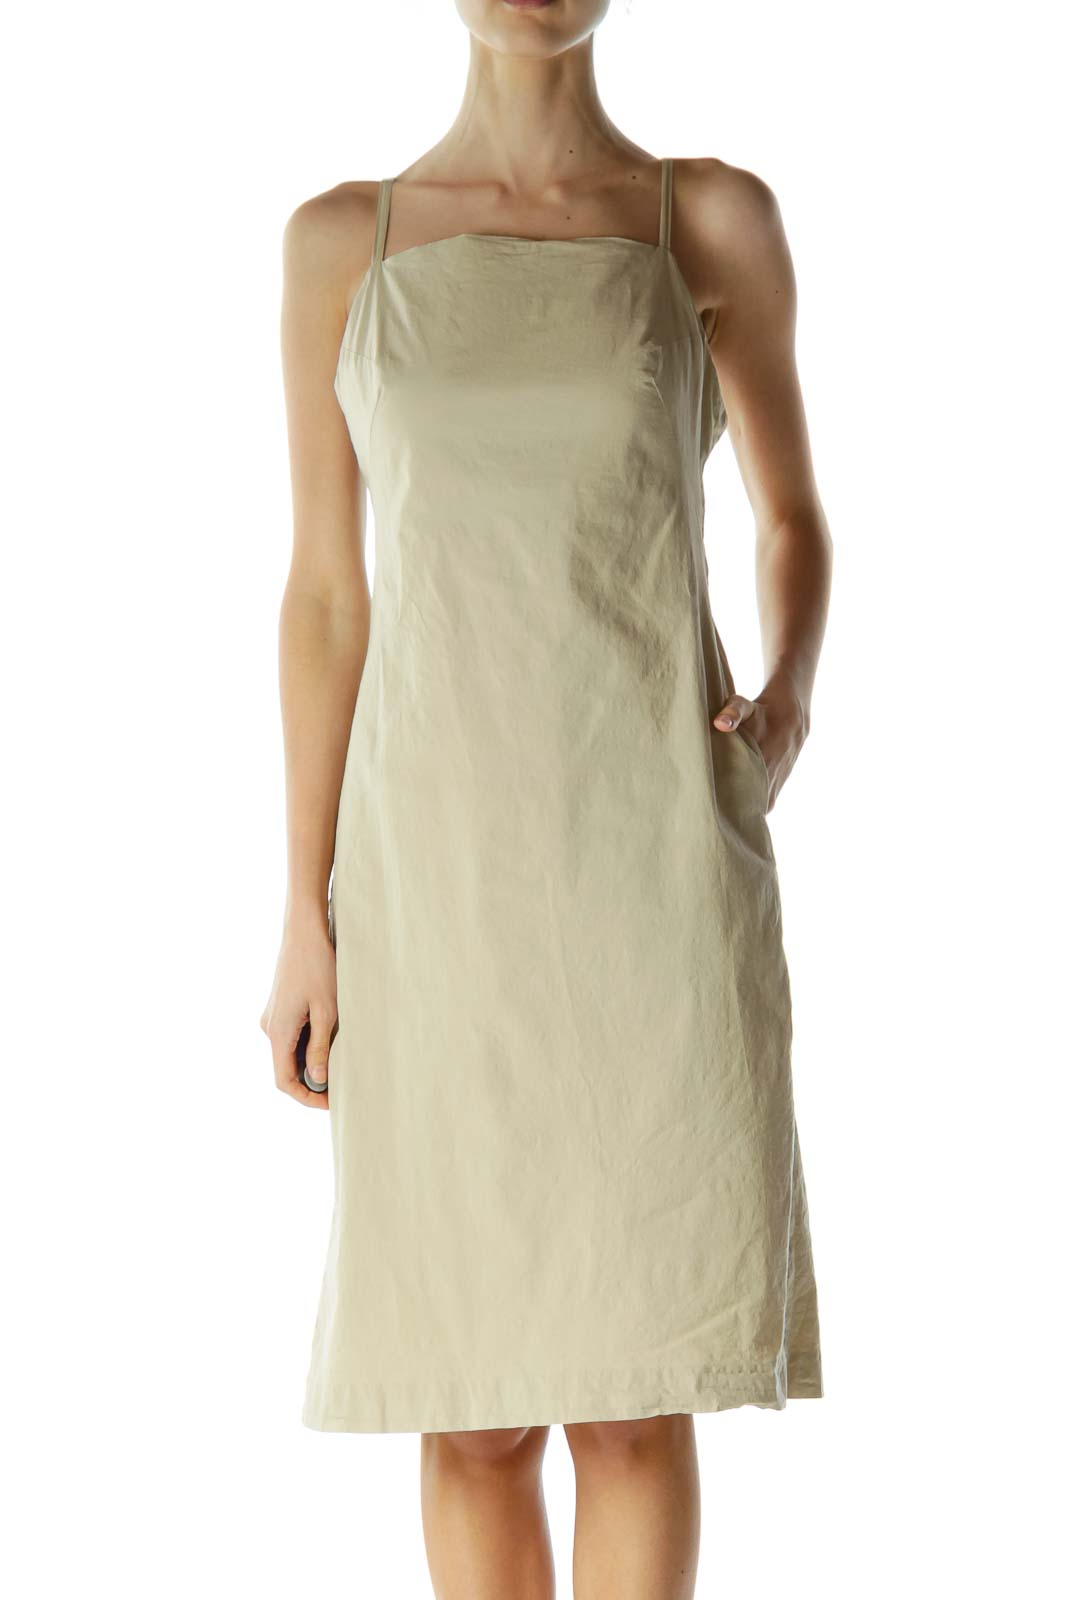 Beige Pocketed Spaghetti Strap Day Dress